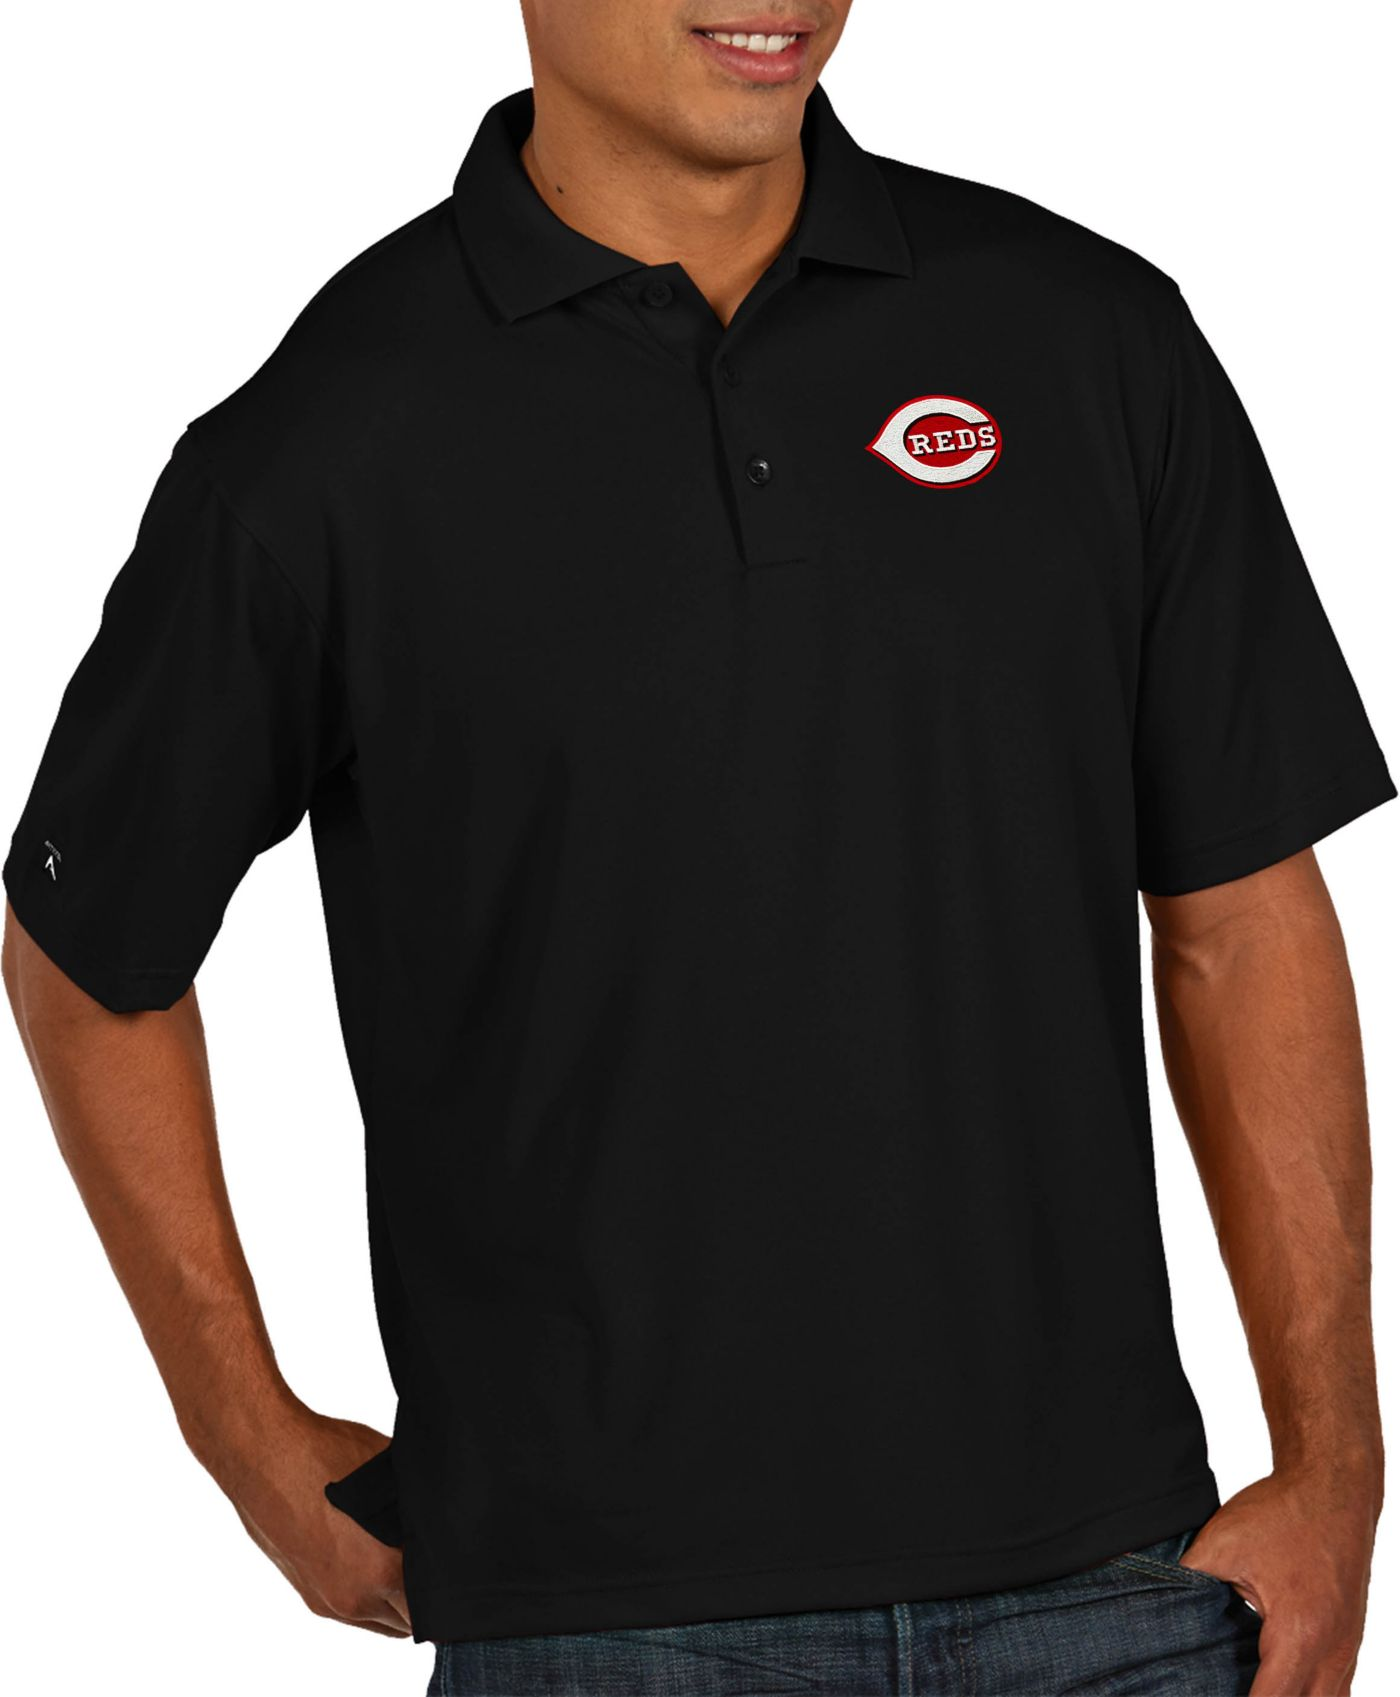 Antigua Men's Cincinnati Reds Pique Black Performance Polo